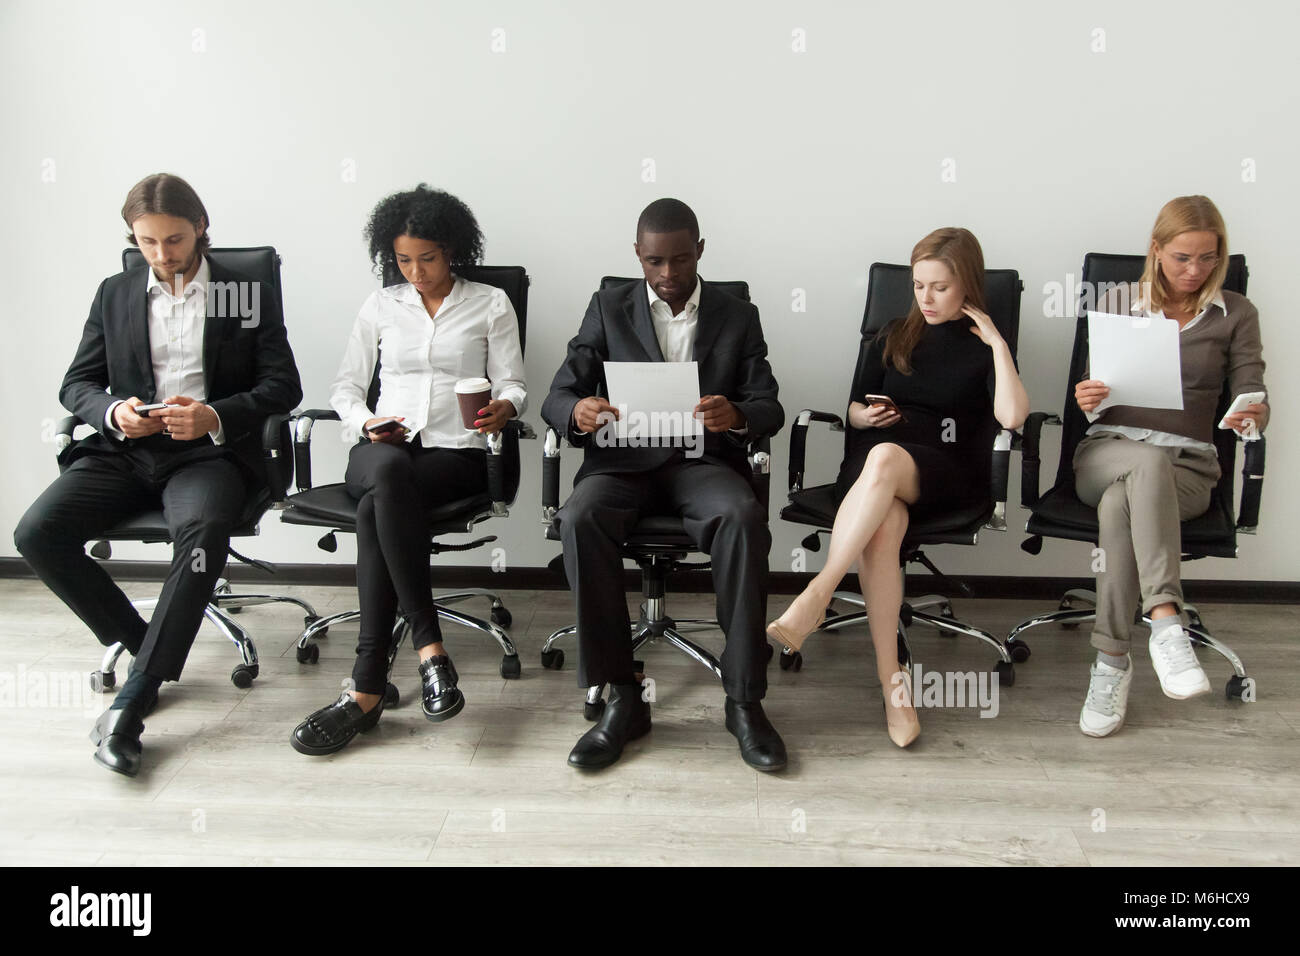 Nervous stressed job applicants preparing for interview waiting  - Stock Image